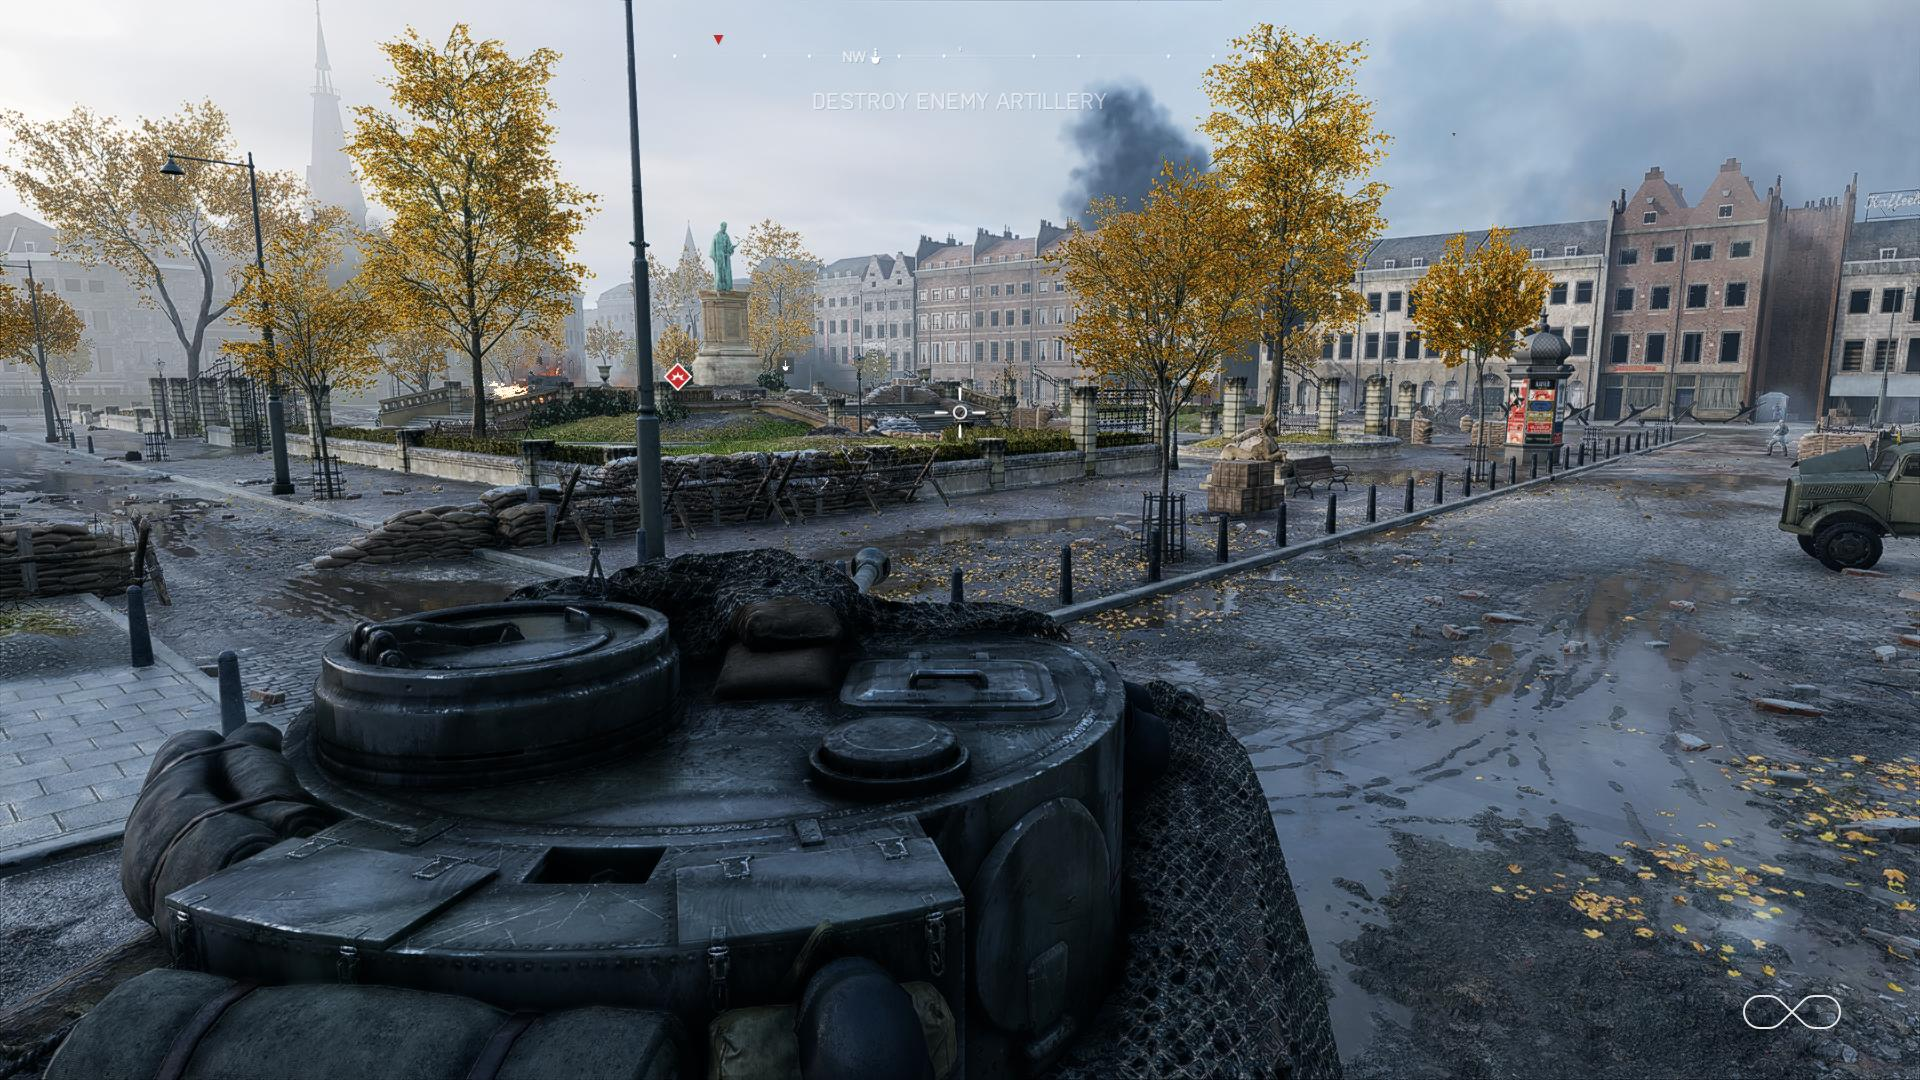 The Last Tiger: Reflections on the Battlefield V Campaign